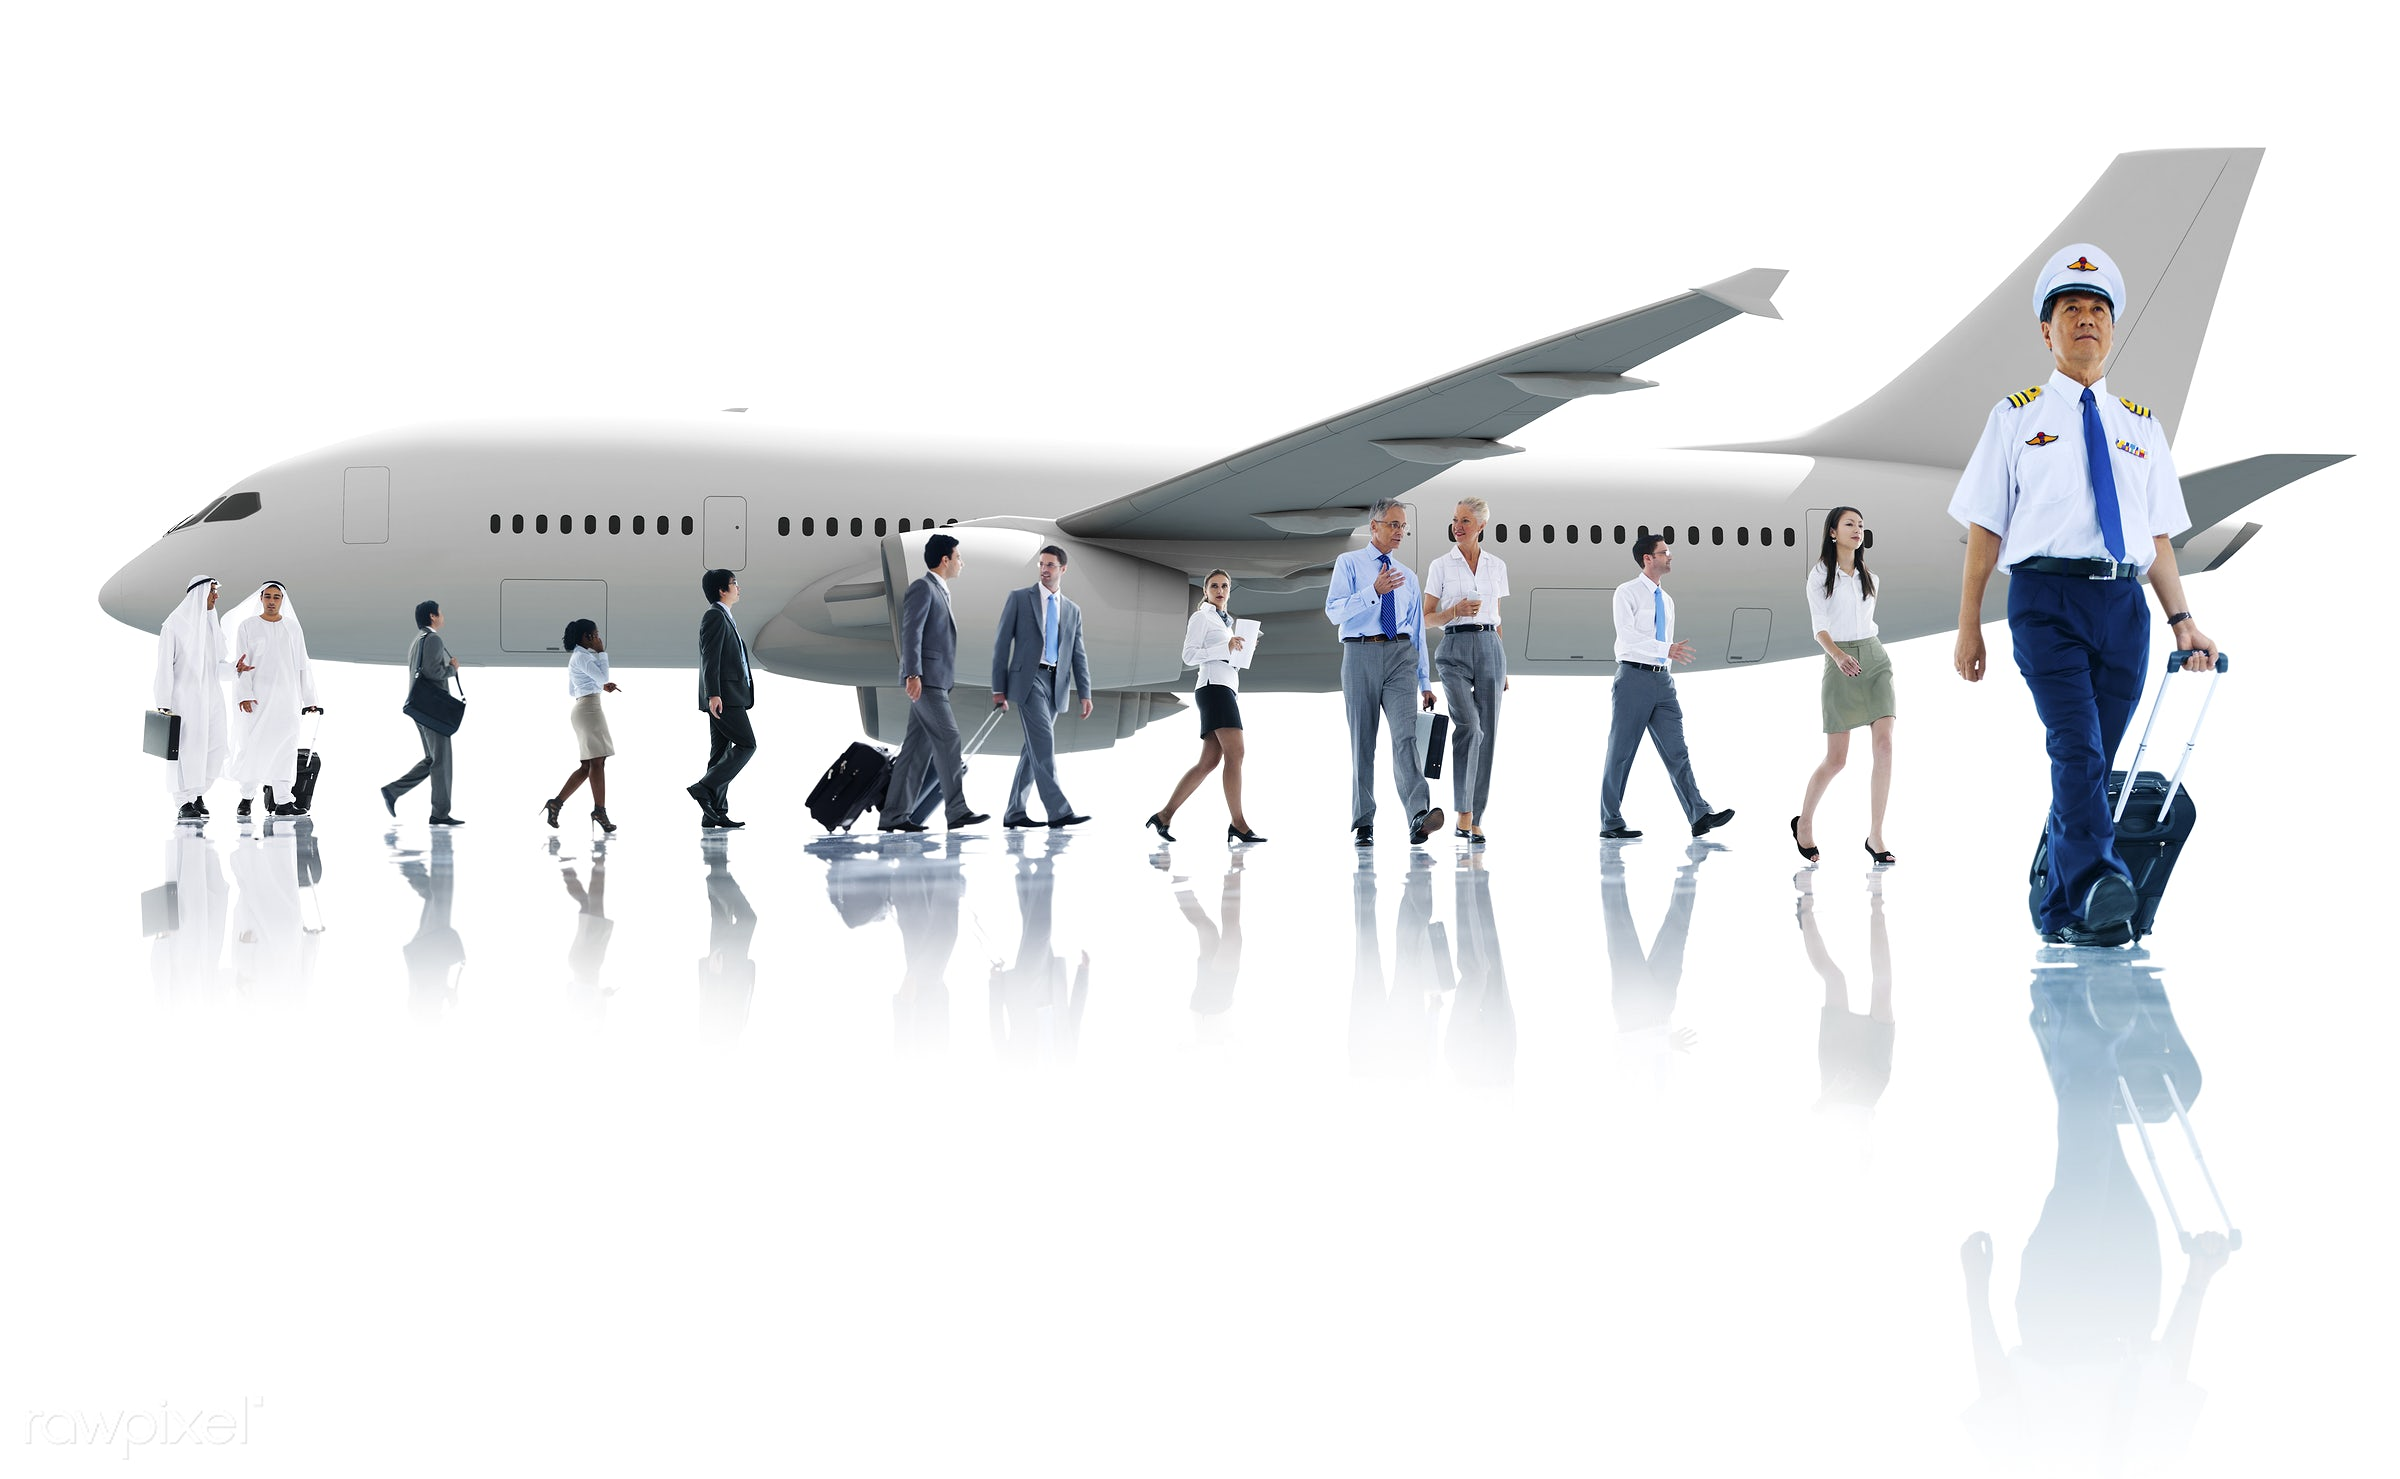 cabin crew, african descent, air stewardess, airplane, airport, asian, asian ethnicity, boarding, business, business people...